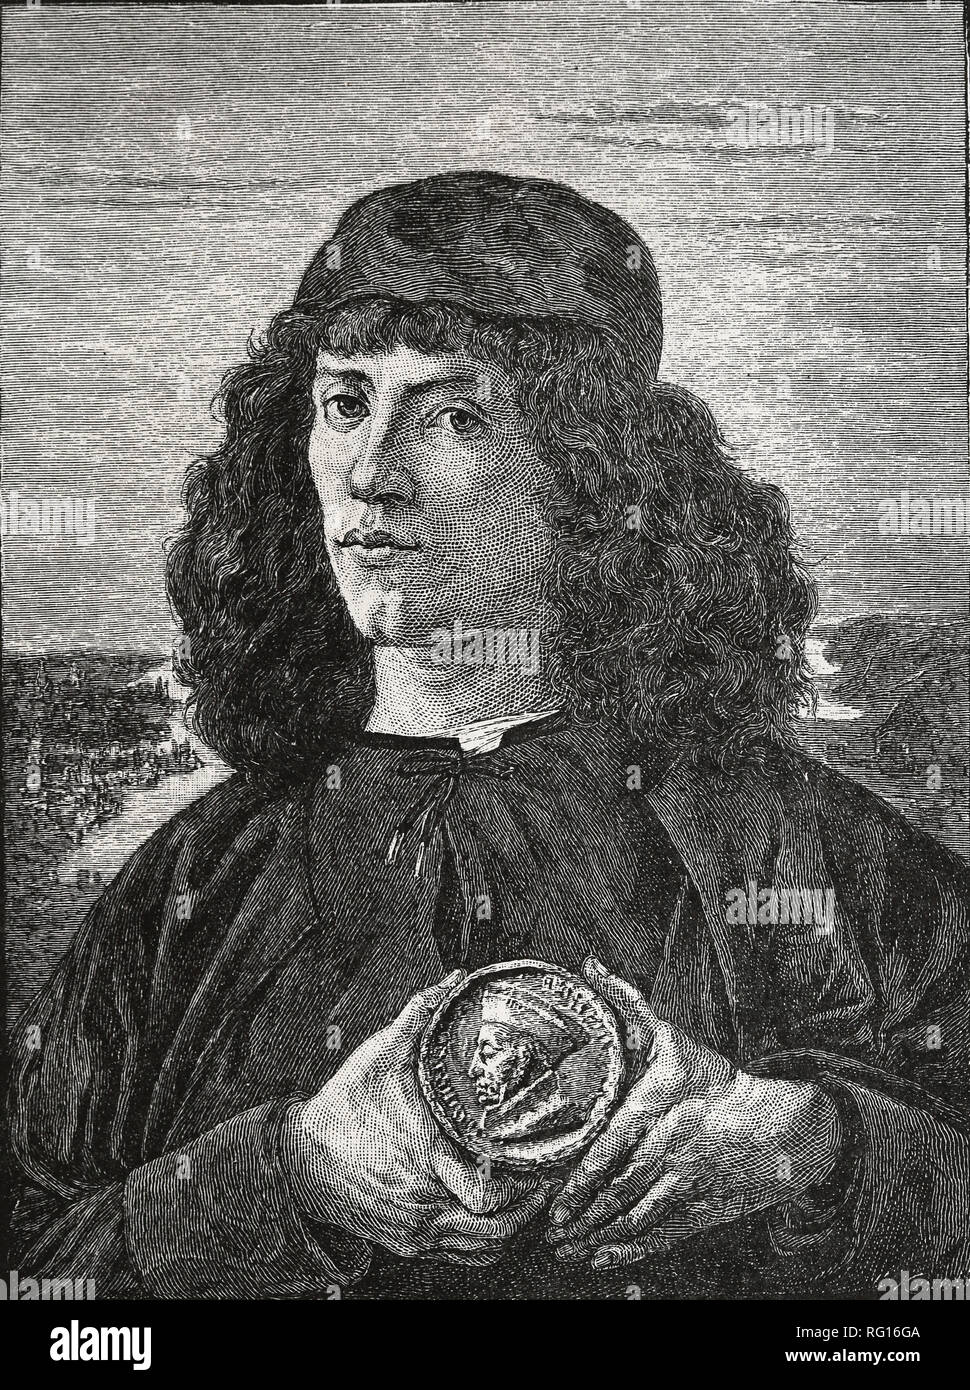 Portrait of a Man with a medal of Cosimo the Elder, 16 th century. Painting by Sandro Botticelli. Copy of an engraving. - Stock Image